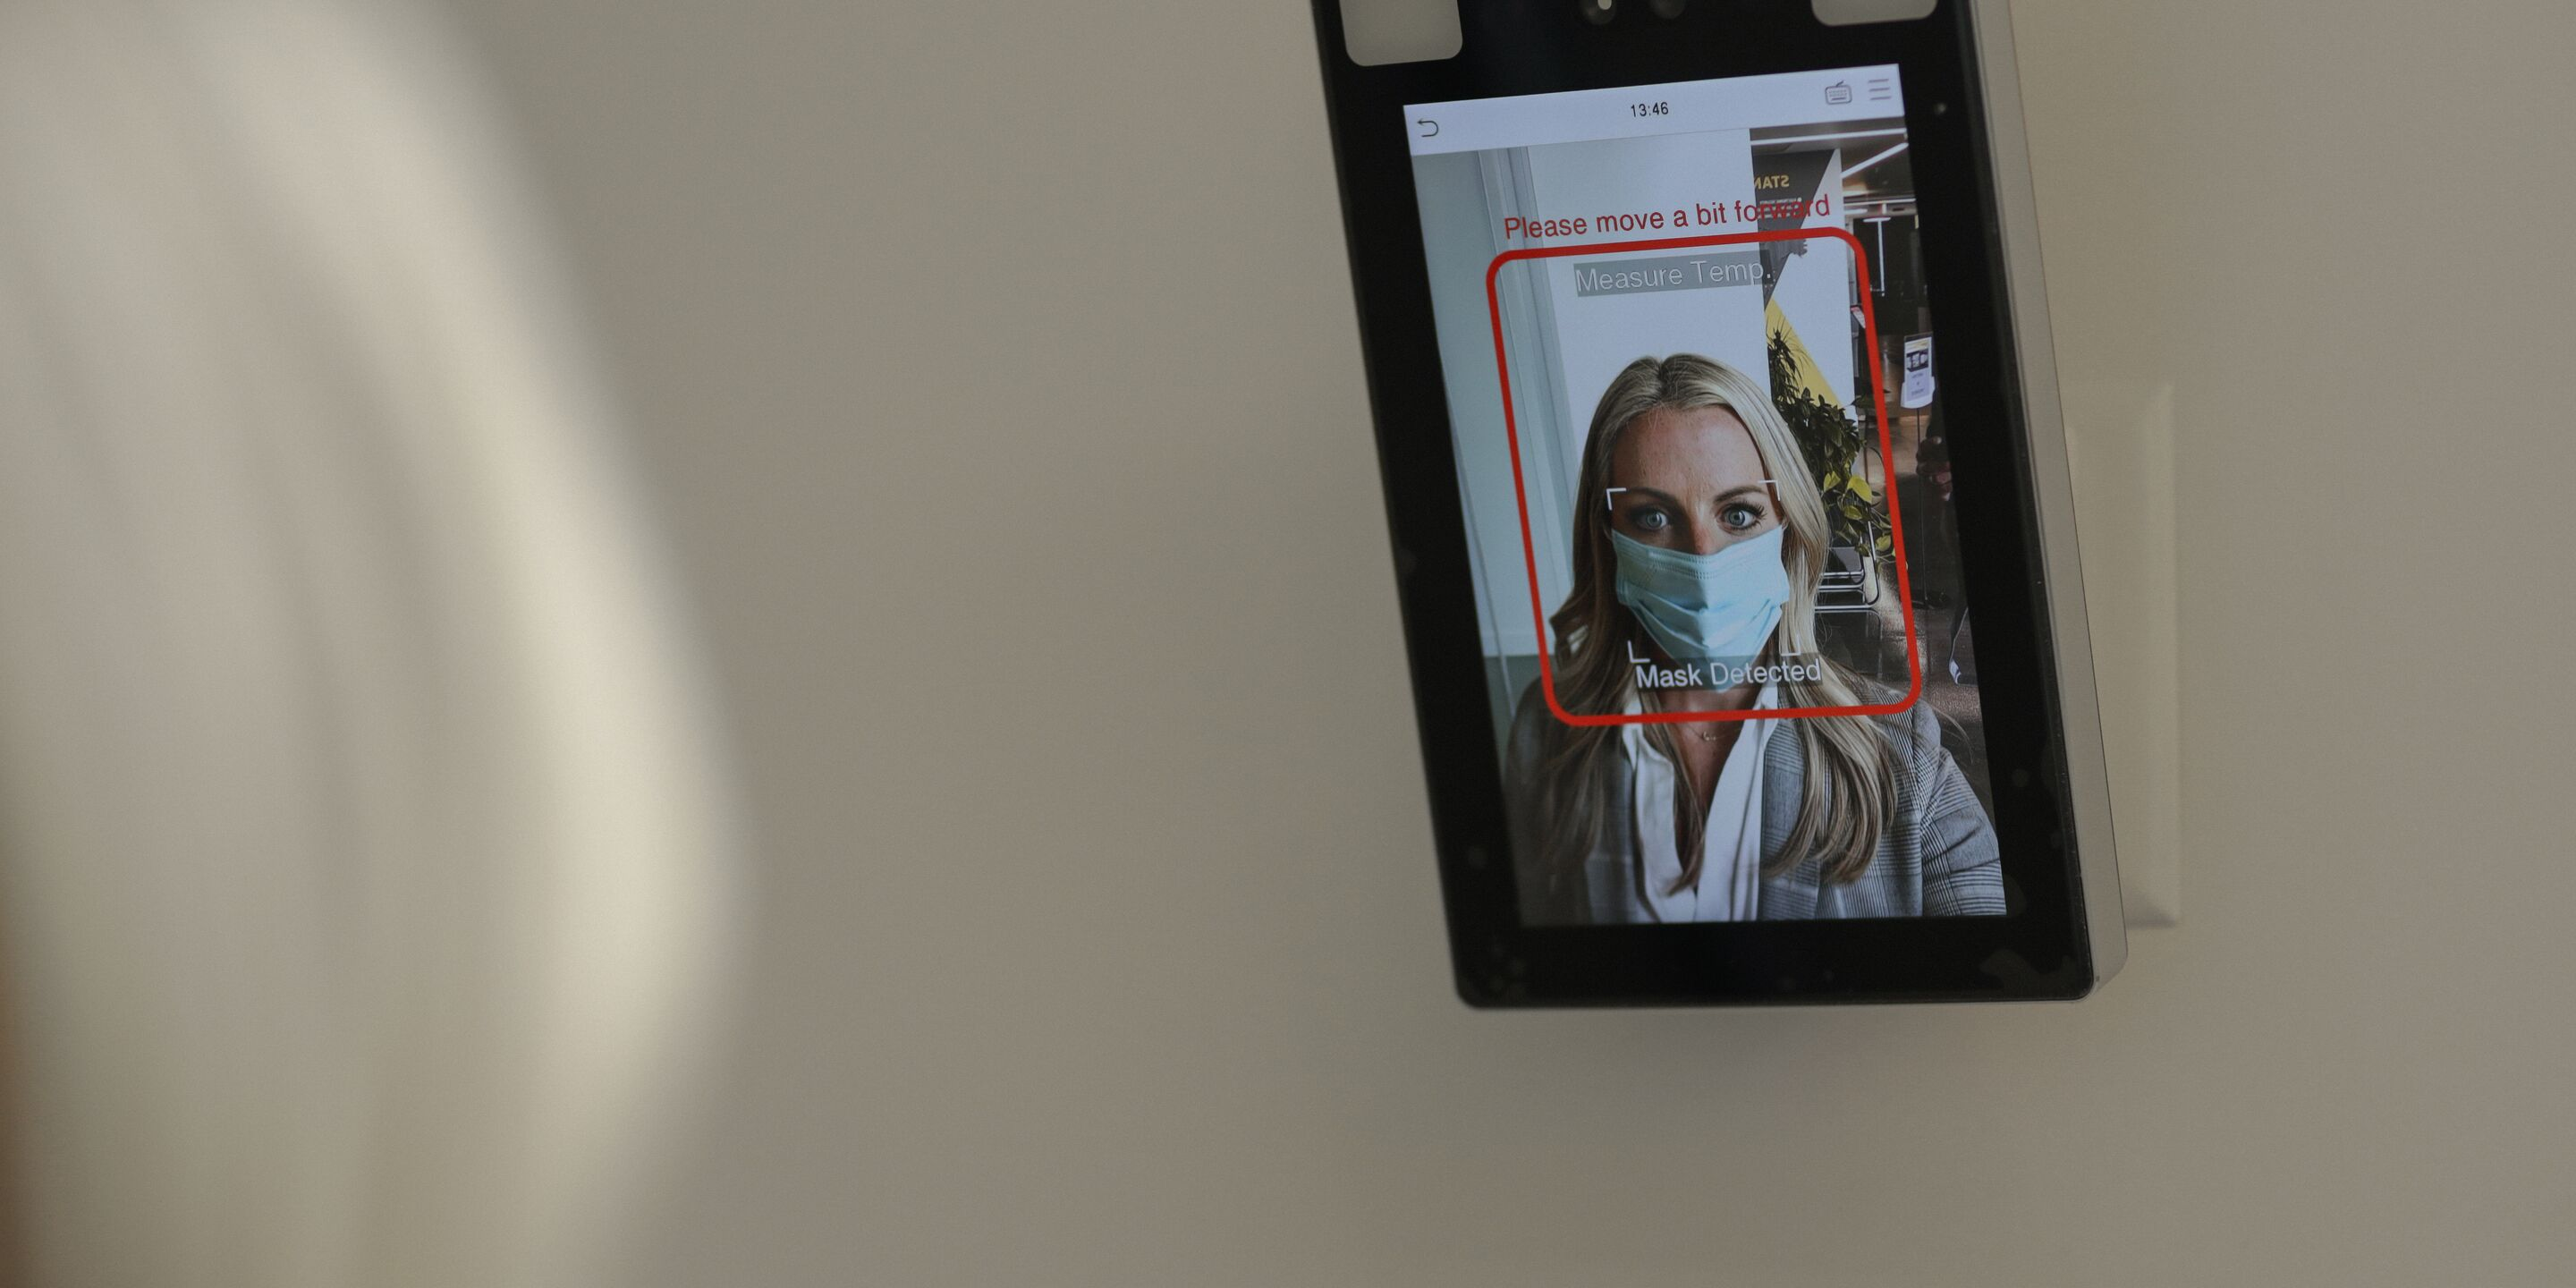 A blonde hair woman wearing a medical mask shown on a display screen that has detected she is wearing a mask